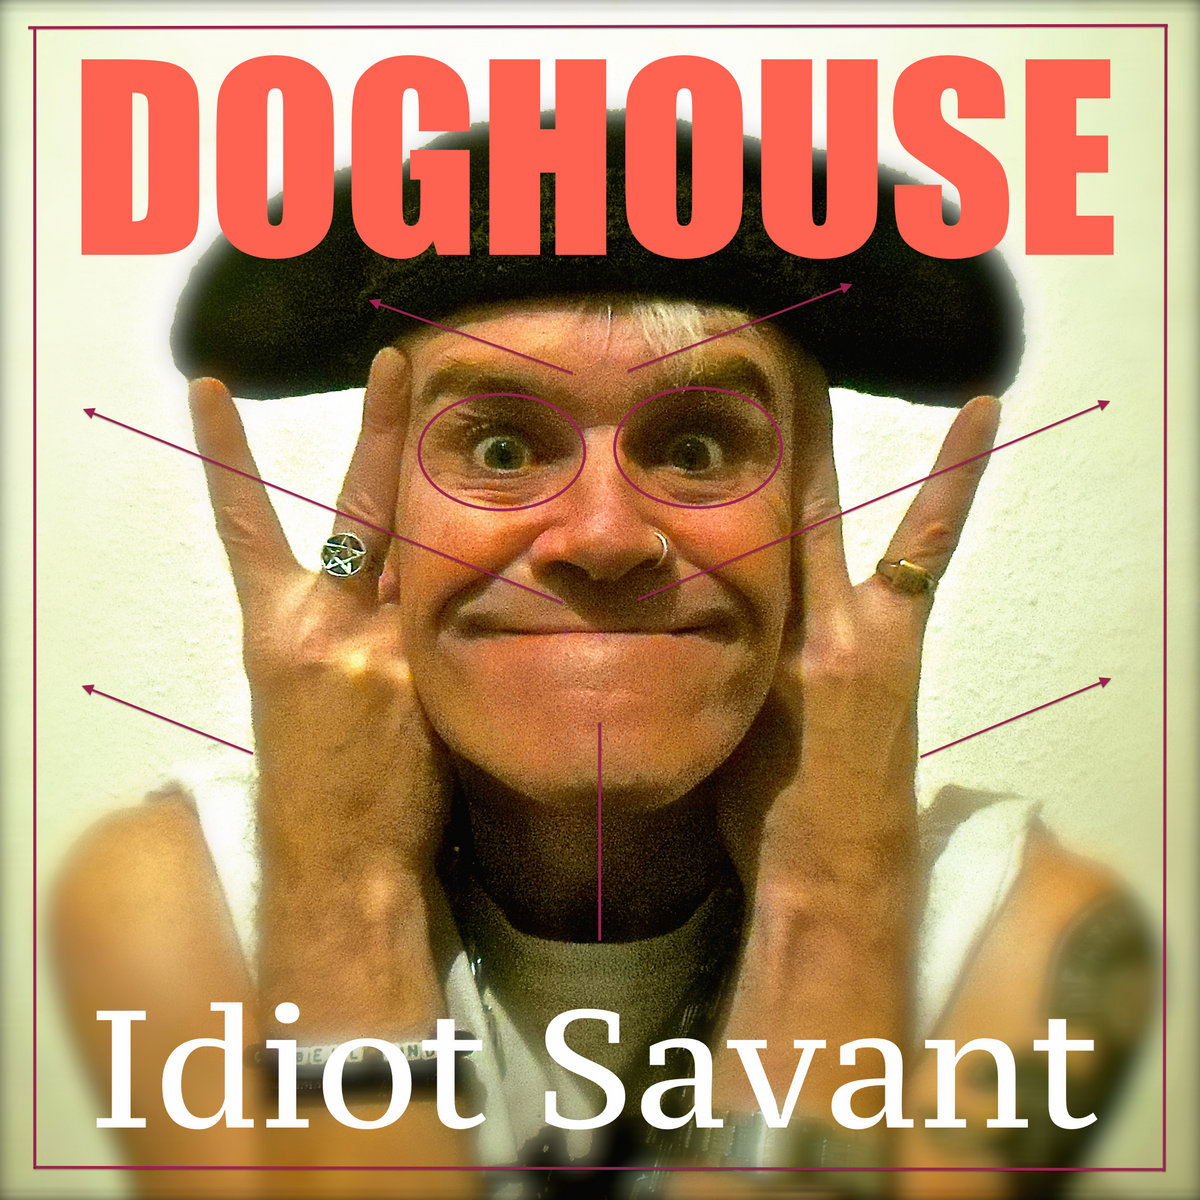 an analysis of the idiot savant Idiot-savant programming now what really disgusted me on top of that was that yahoo's idiot savant content-analysis software dropped at least 3 ads on the page.